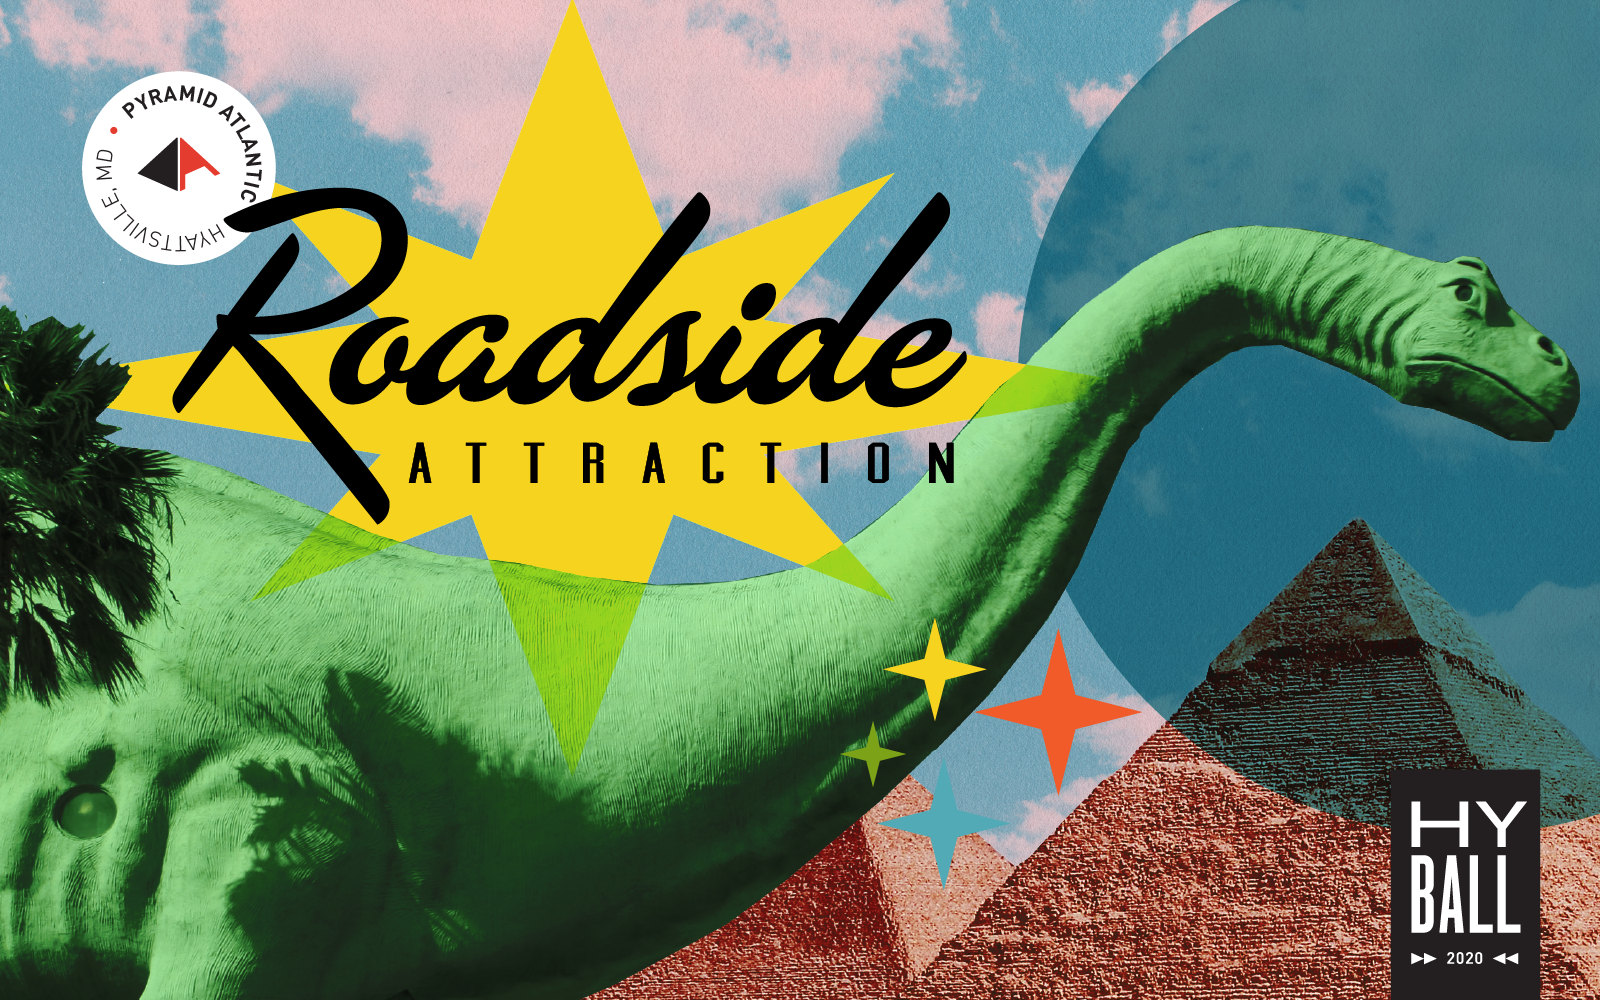 HyBall 2020:  Roadside Attraction image